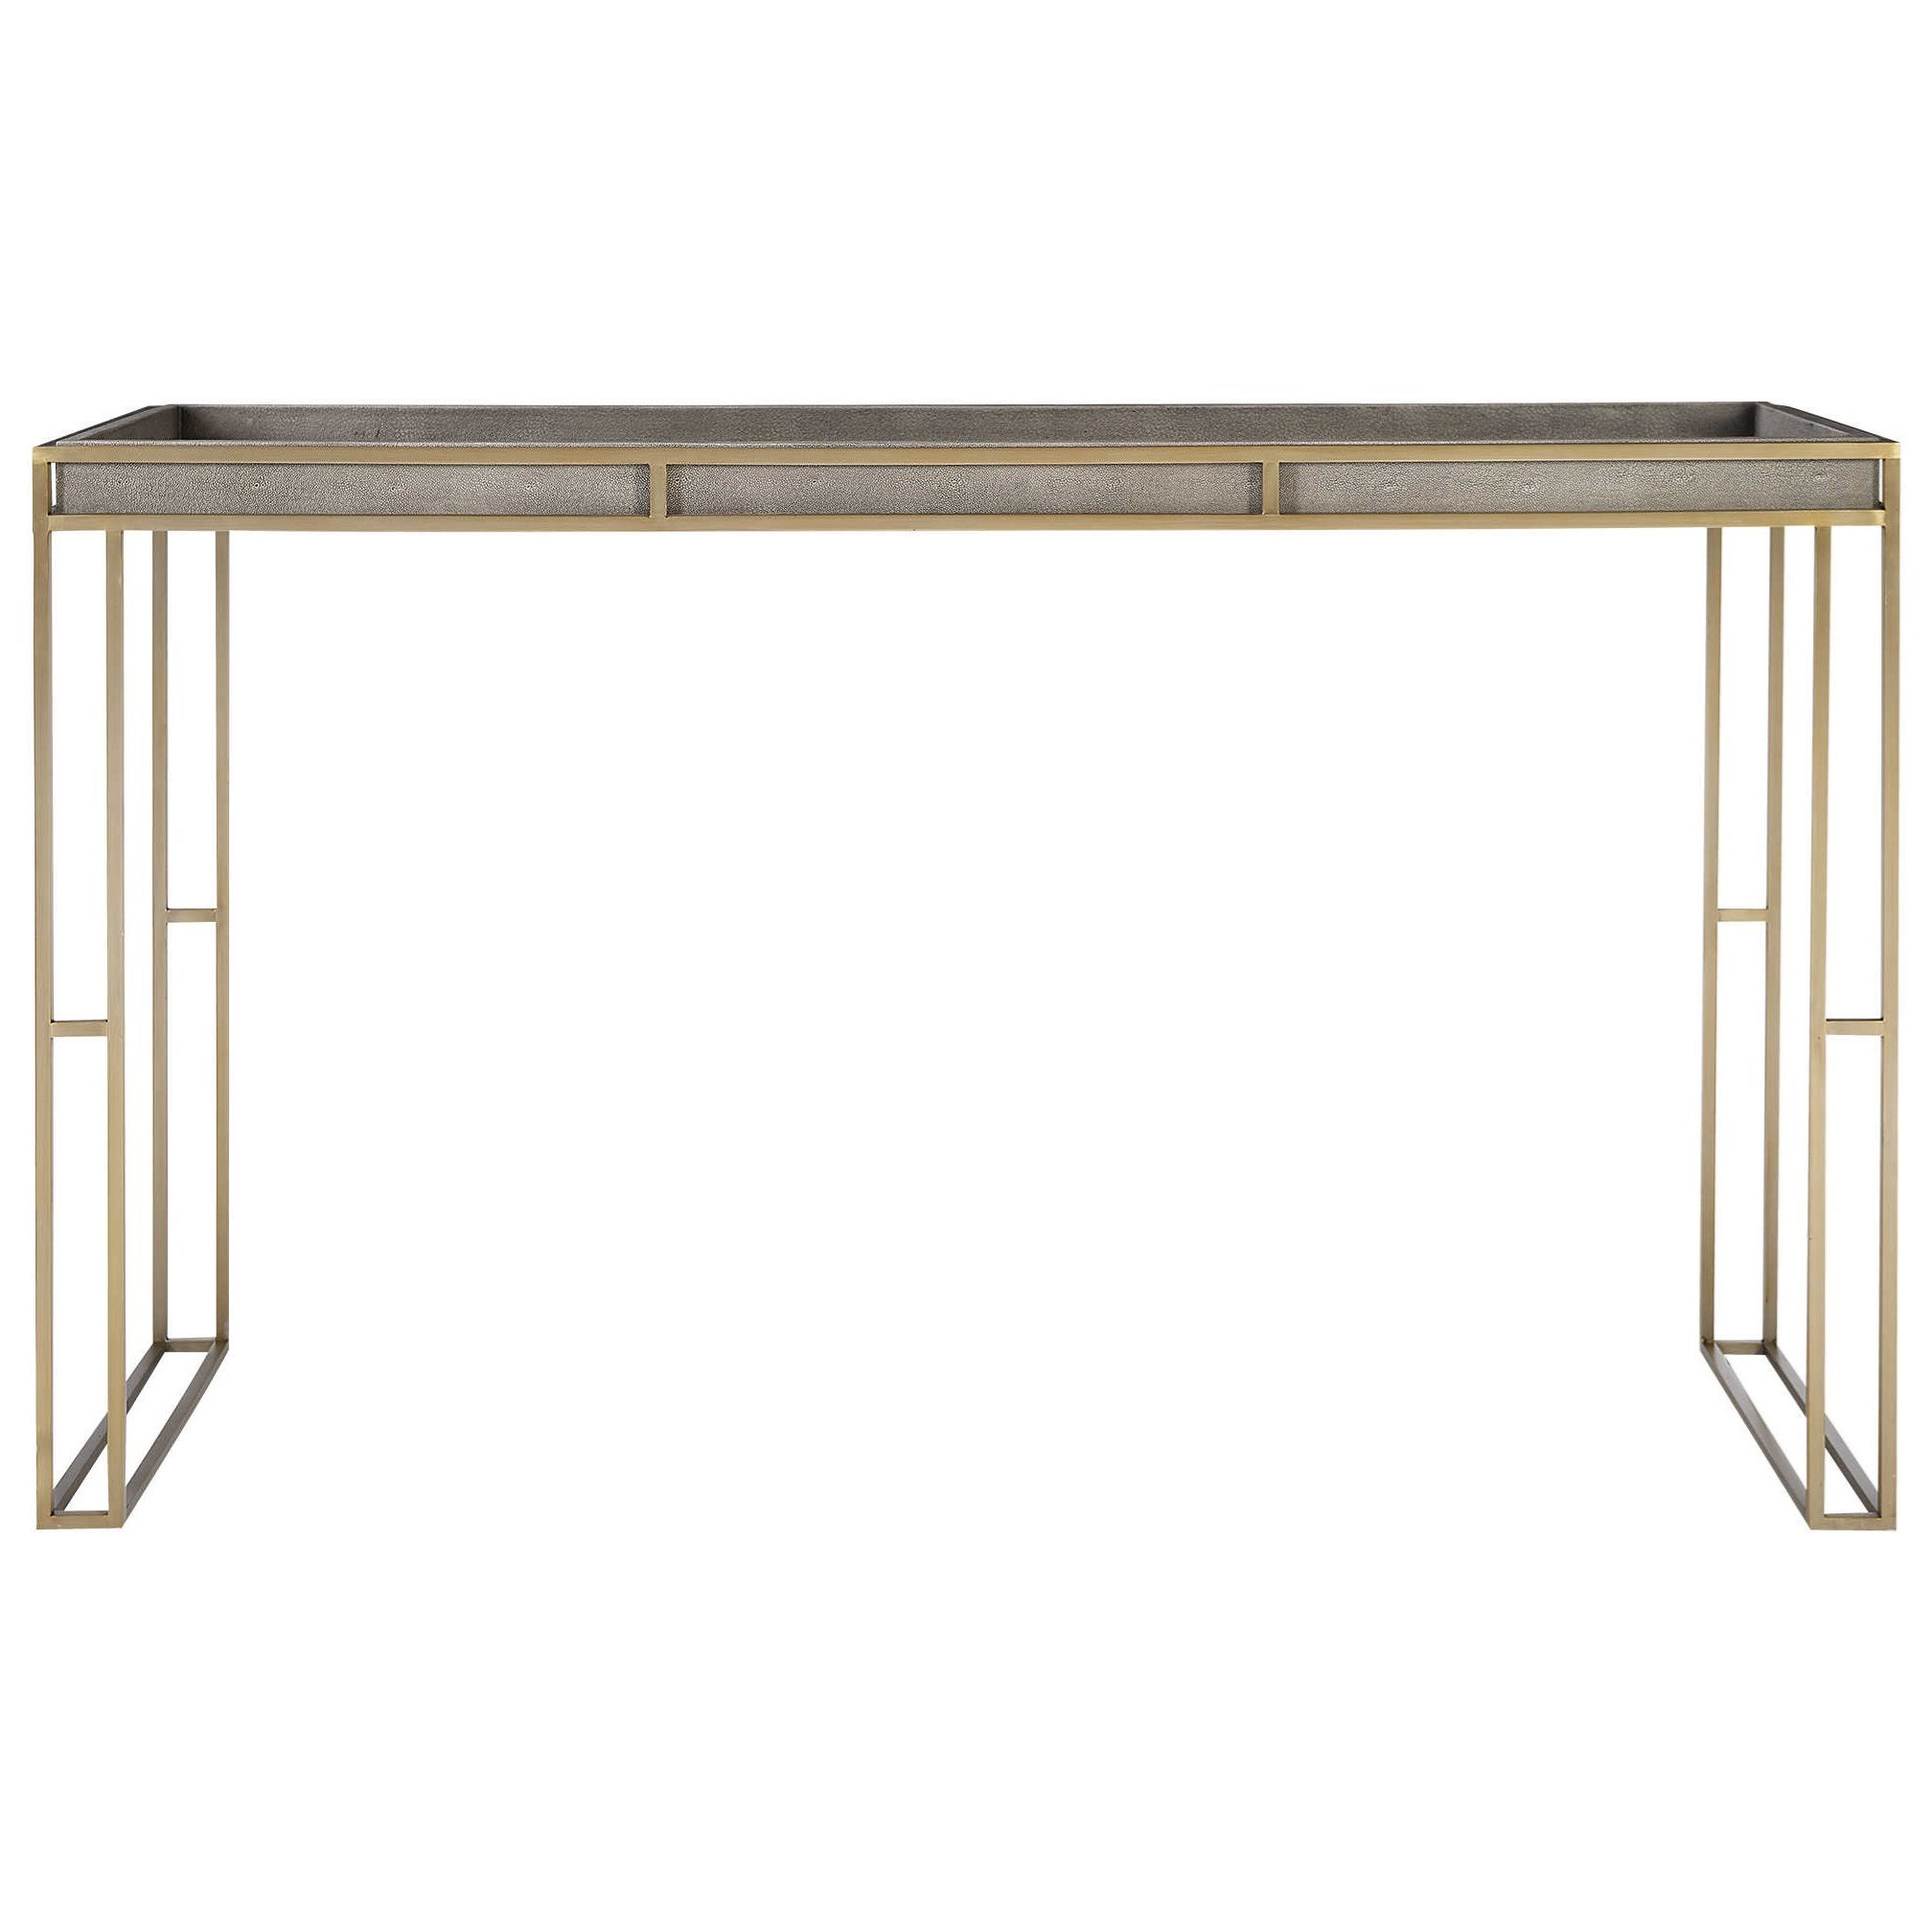 Accent Furniture - Occasional Tables Cardew Modern Console Table by Uttermost at Del Sol Furniture